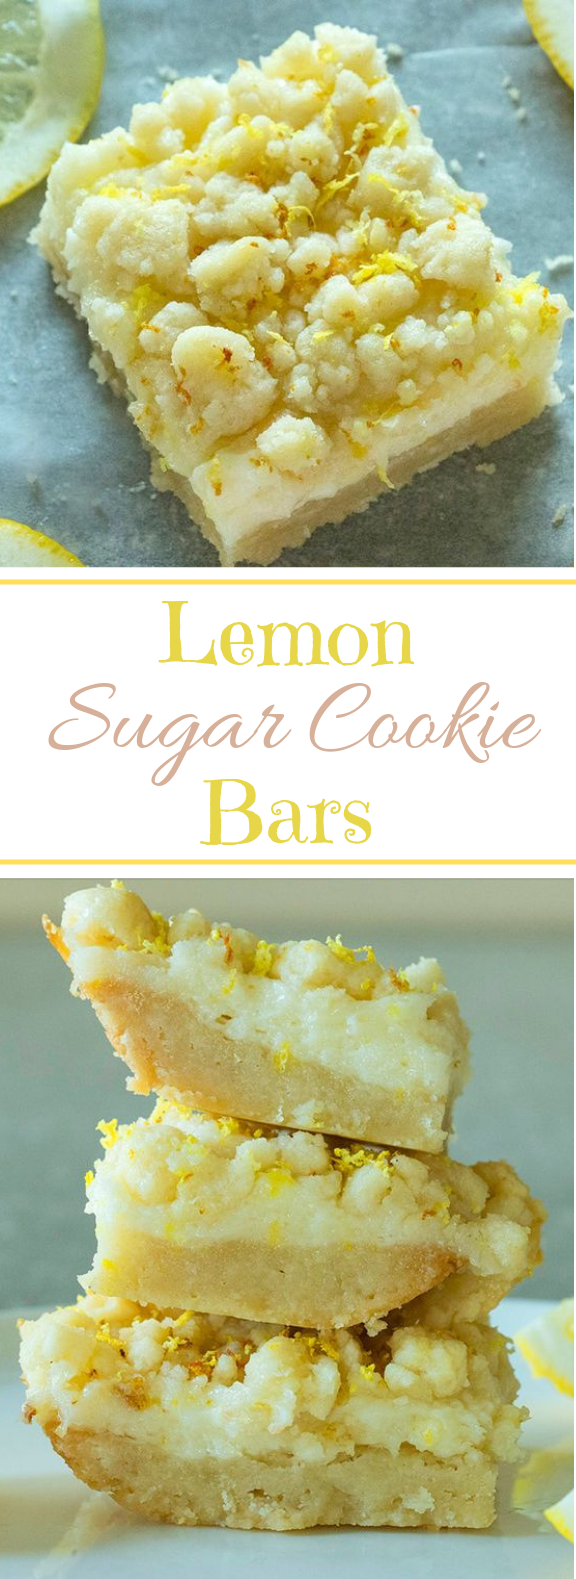 Lemon Sugar Cookie Bars #bars #cookies